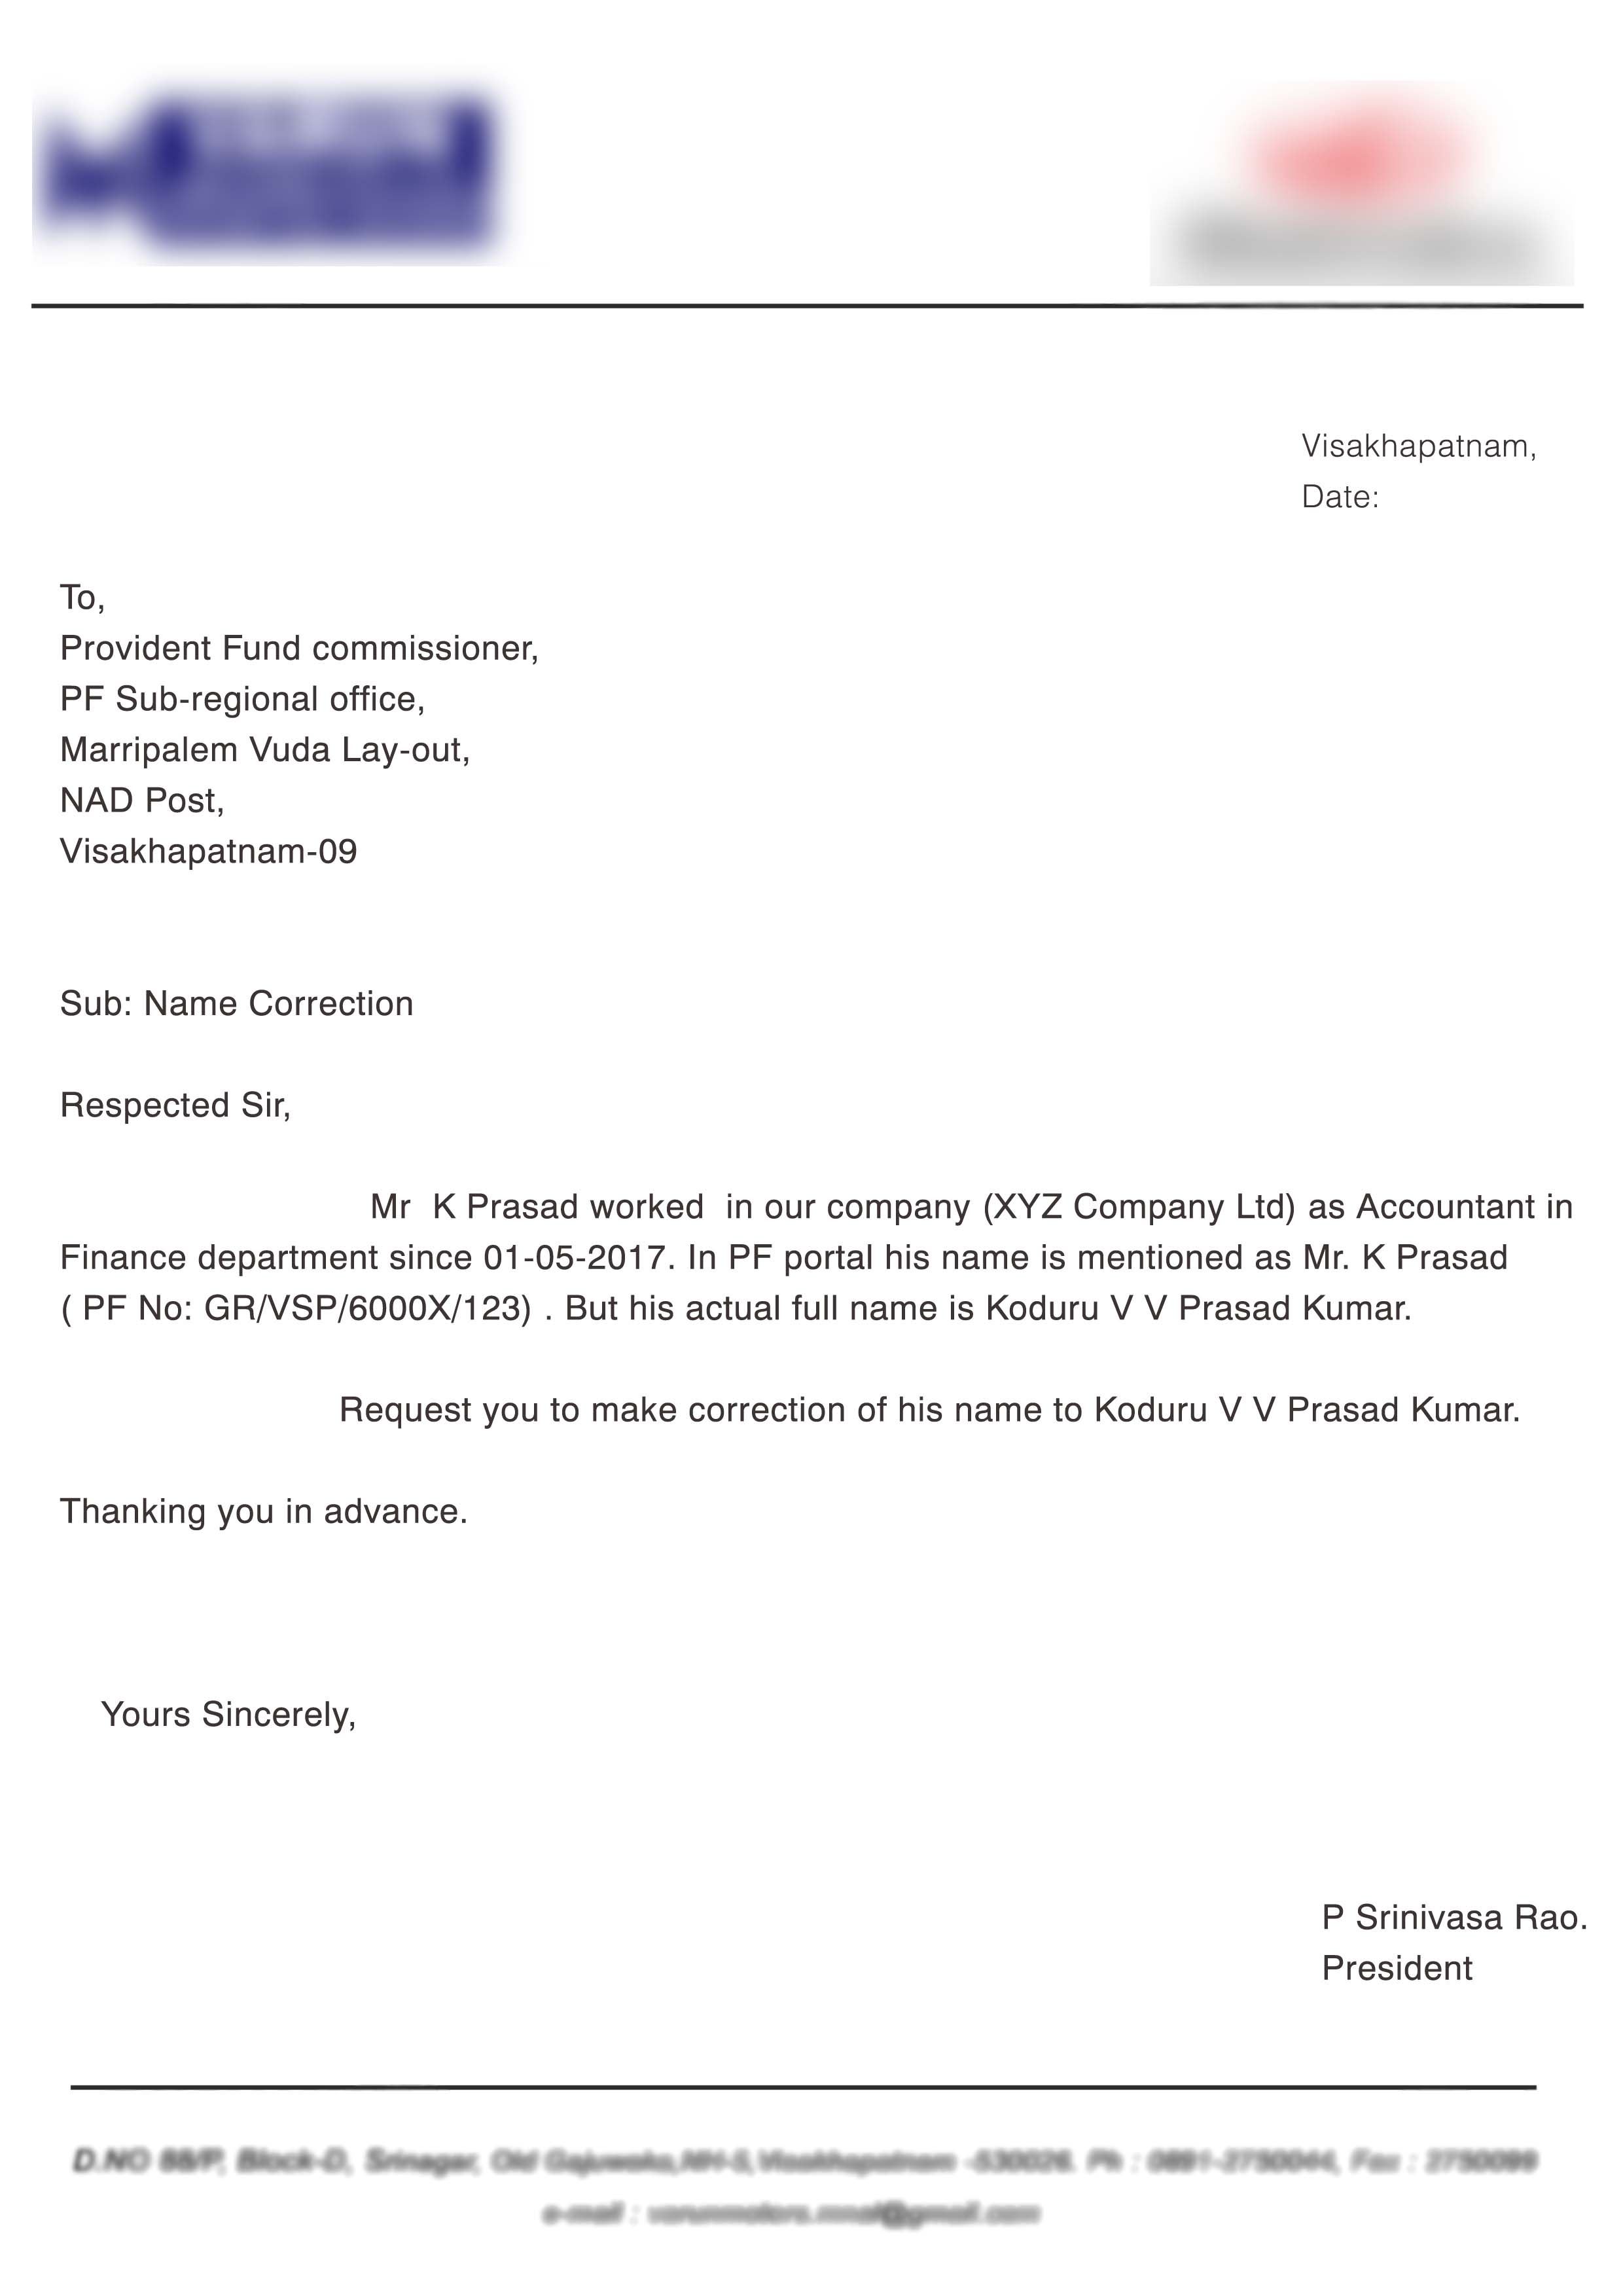 PF joint declaration form by member and employer